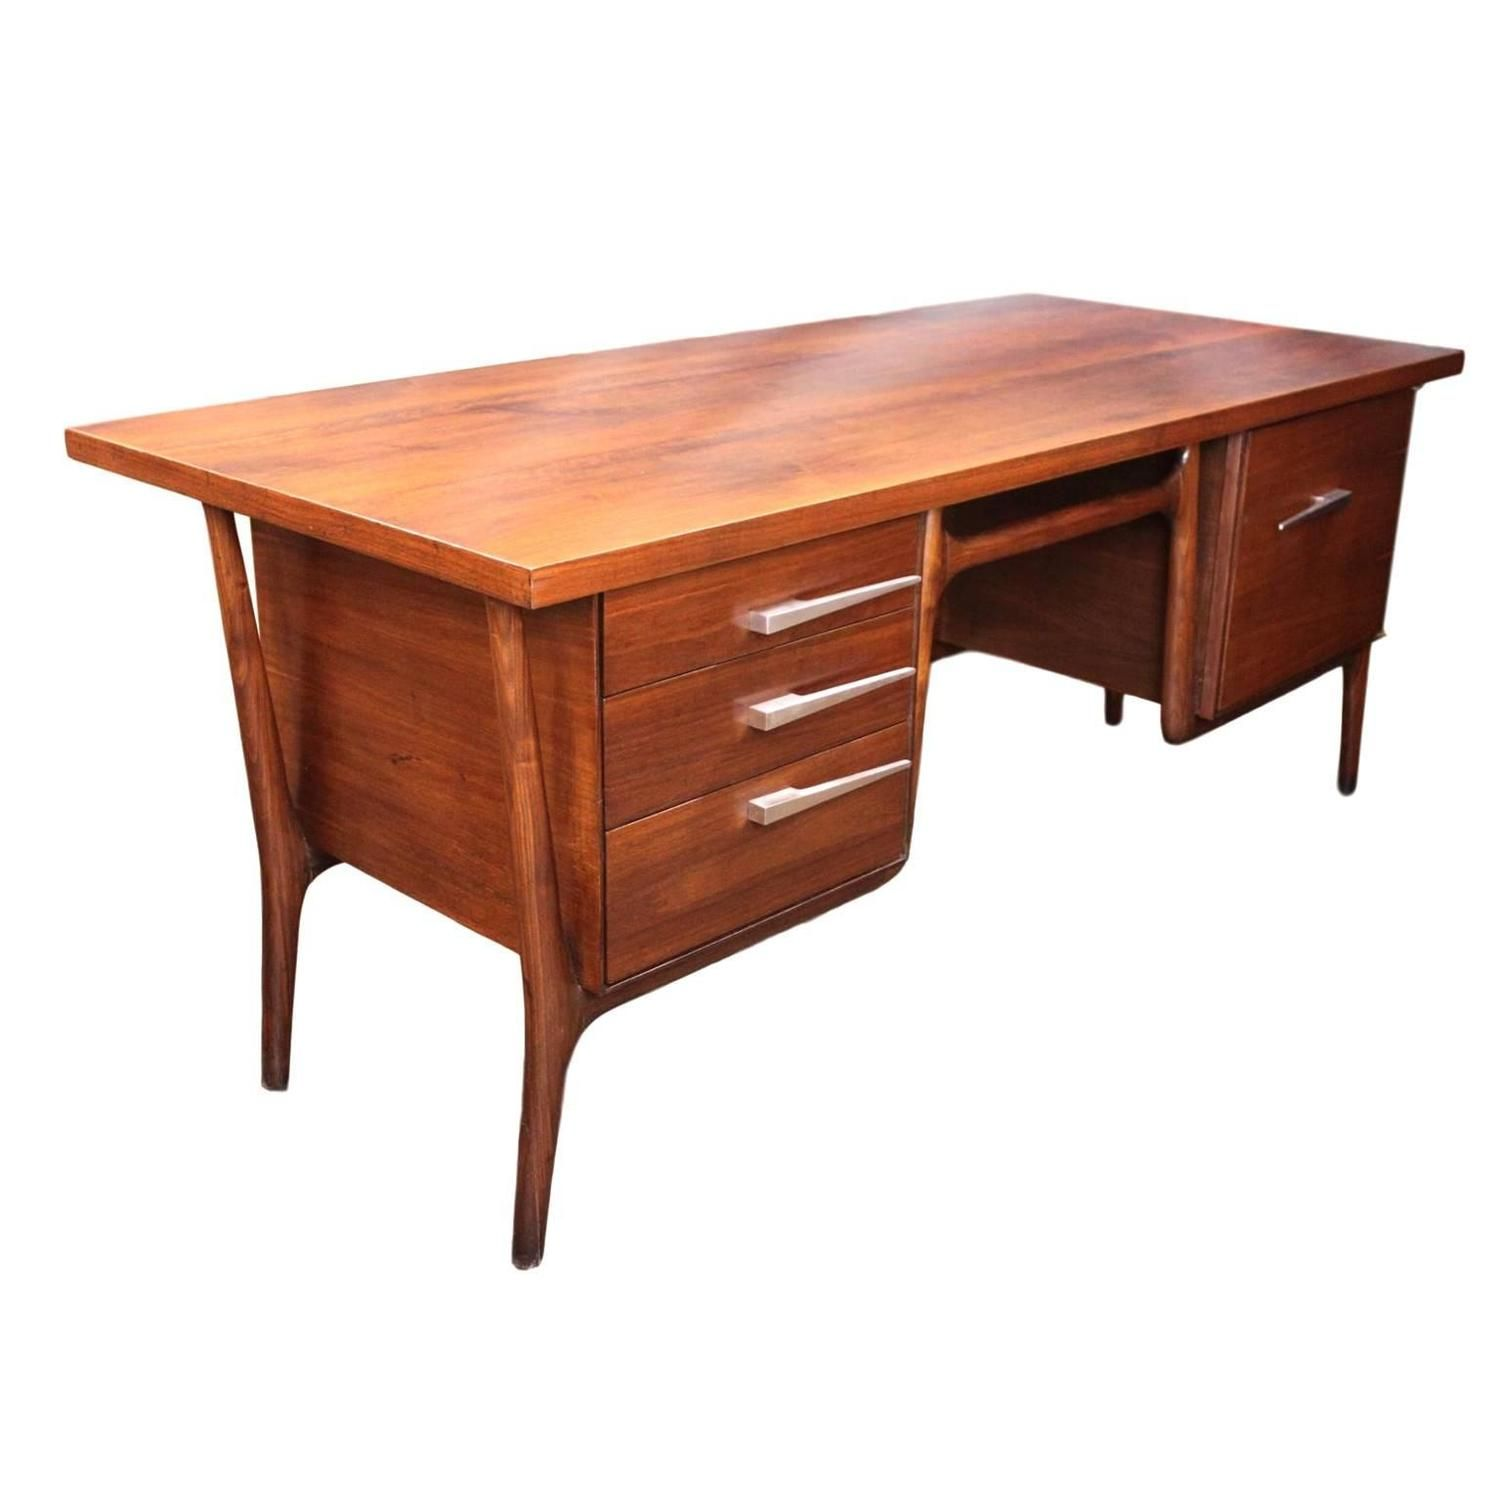 Iconic 1950s Mid Century Modern Walnut Executive Desk By Leopold